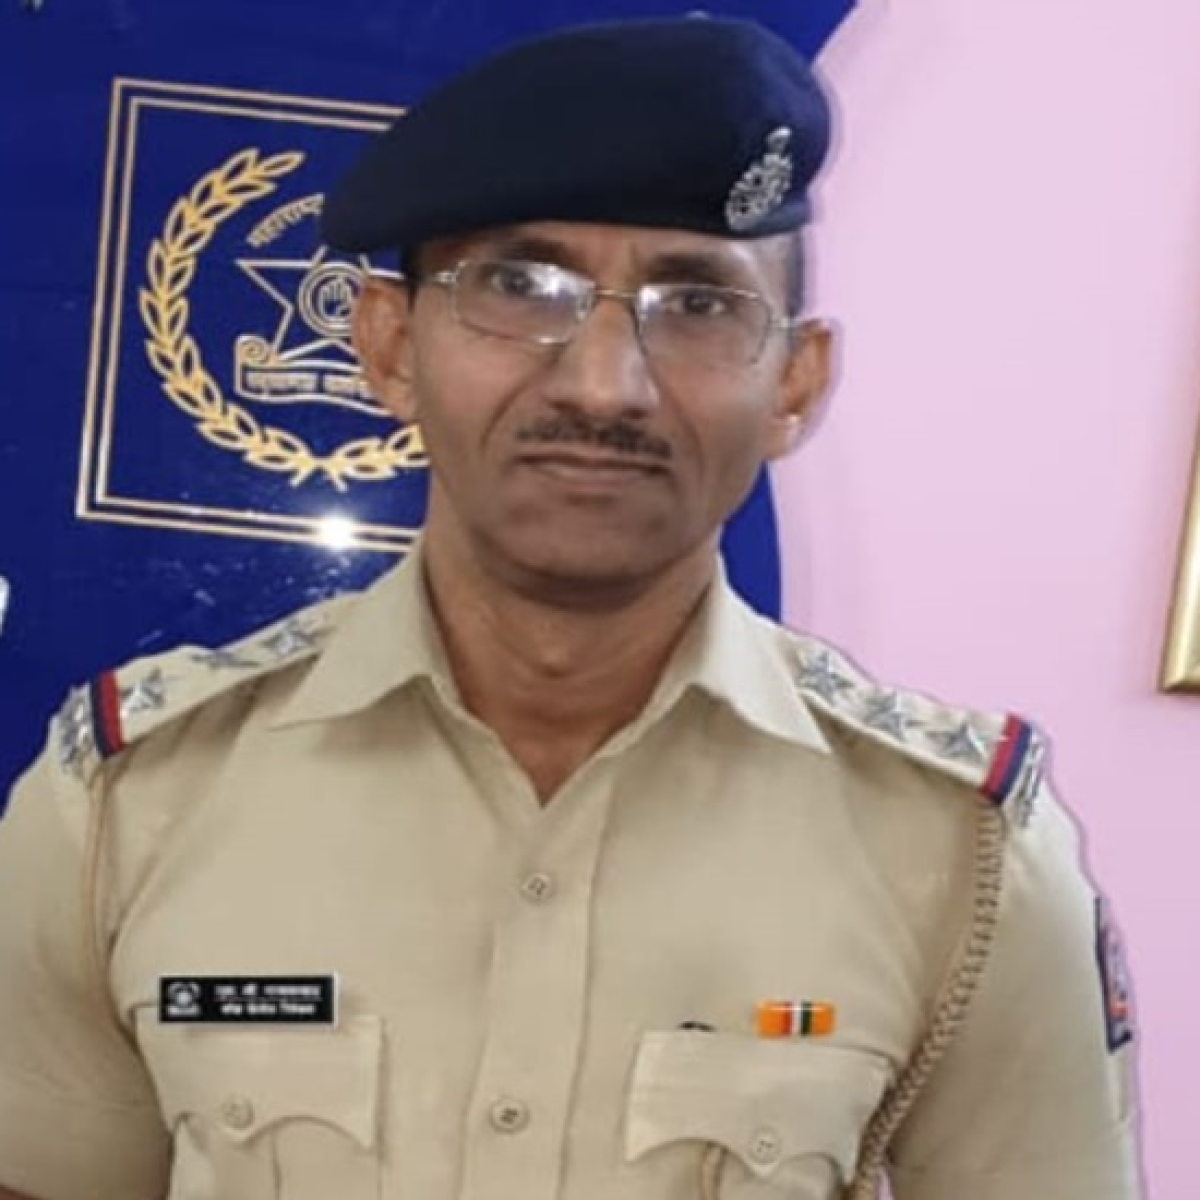 Corona warriors: Thane cops stationed at Vartak Nagar police station have not stepped out of work for past 20 days